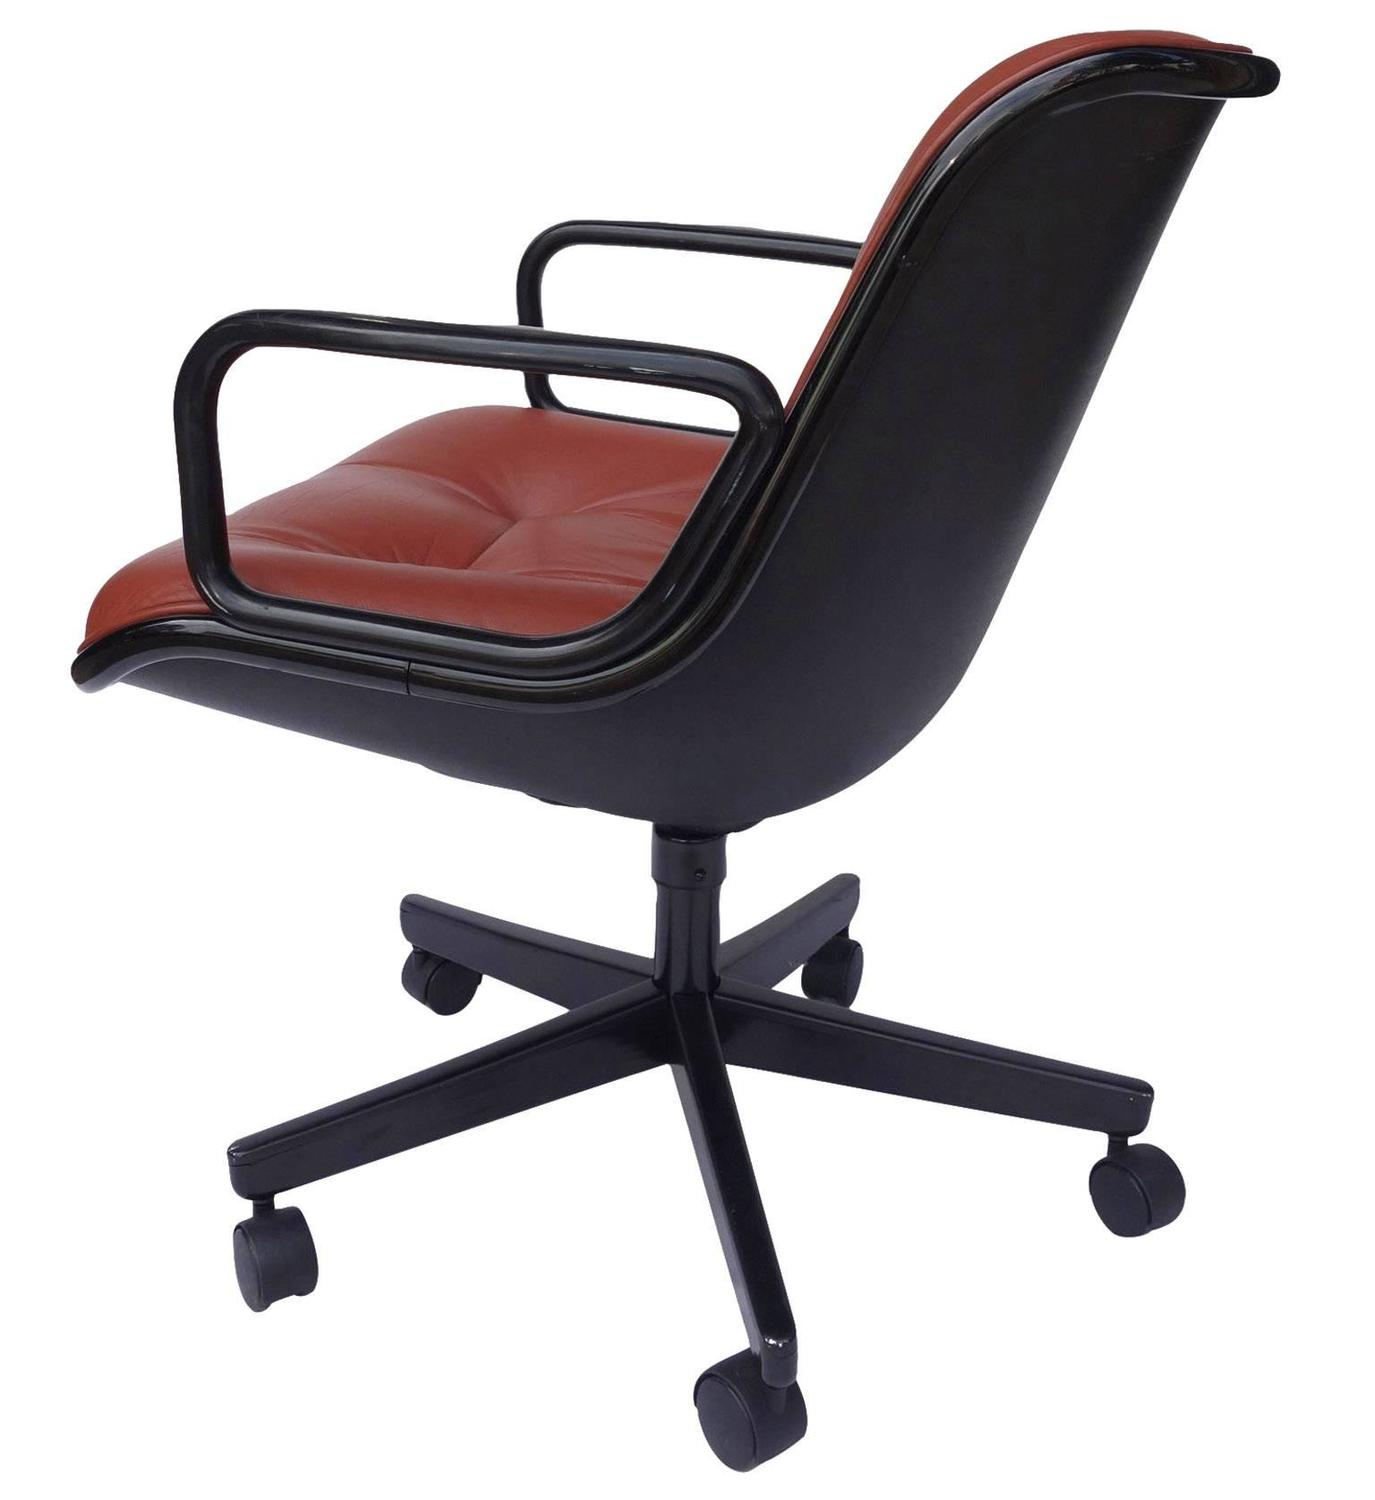 Knoll Pollock Chair Executive Chair By Charles Pollock For Knoll For Sale At